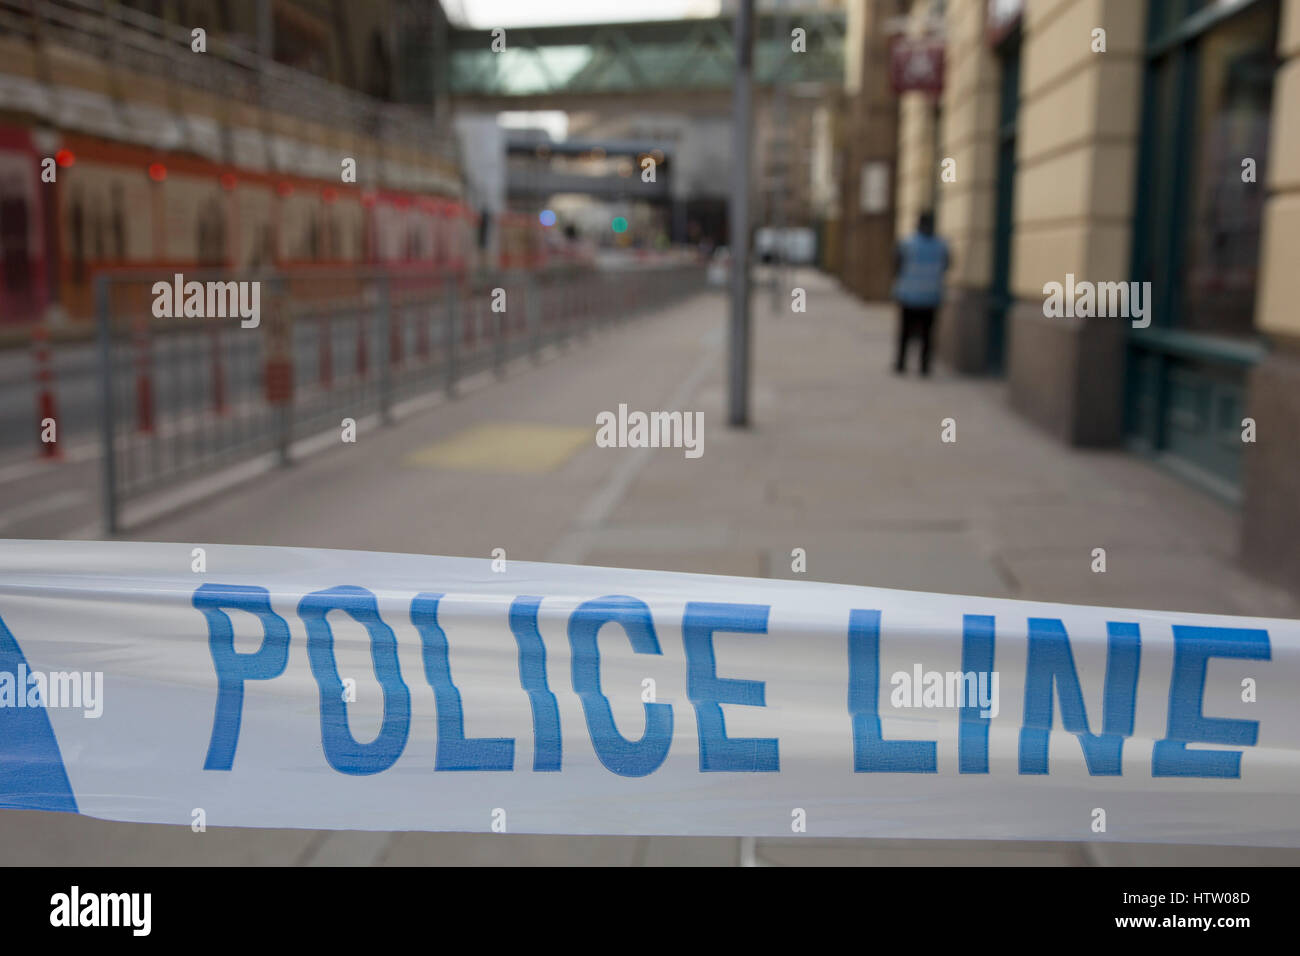 London Bridge Station was evacuated due to an abandoned vehicle on 7th March 2017, in London, United Kingdom. The - Stock Image